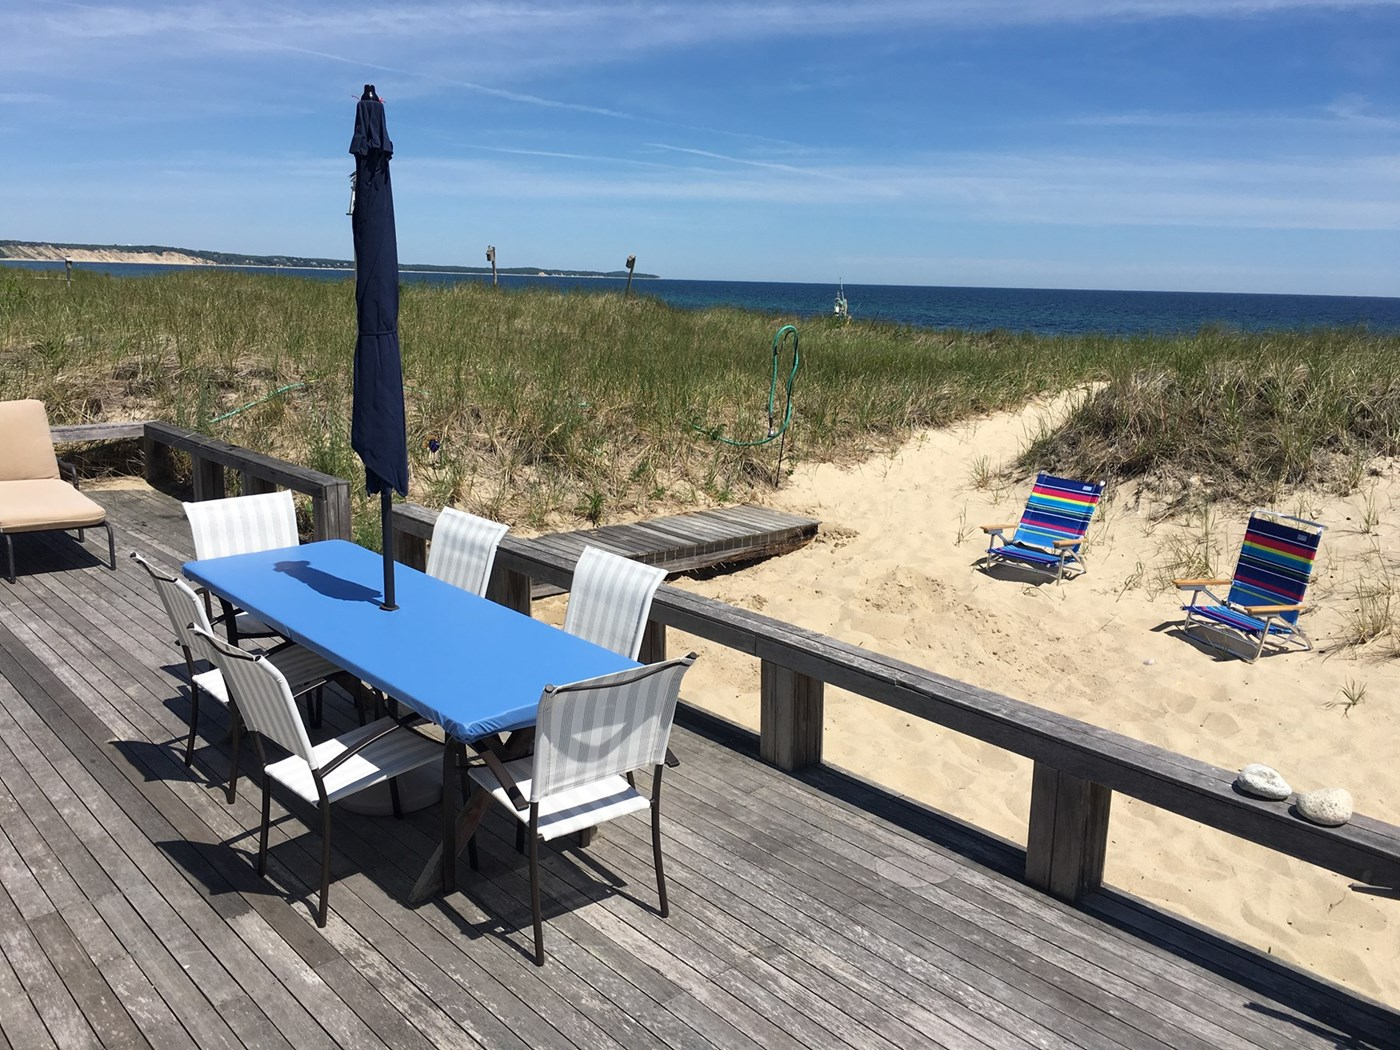 sagamore beach Sagamore beach ace hardware 262 likes 1 talking about this 10 were here  sagamore beach ace hardware, we carry benjamin moore paints.